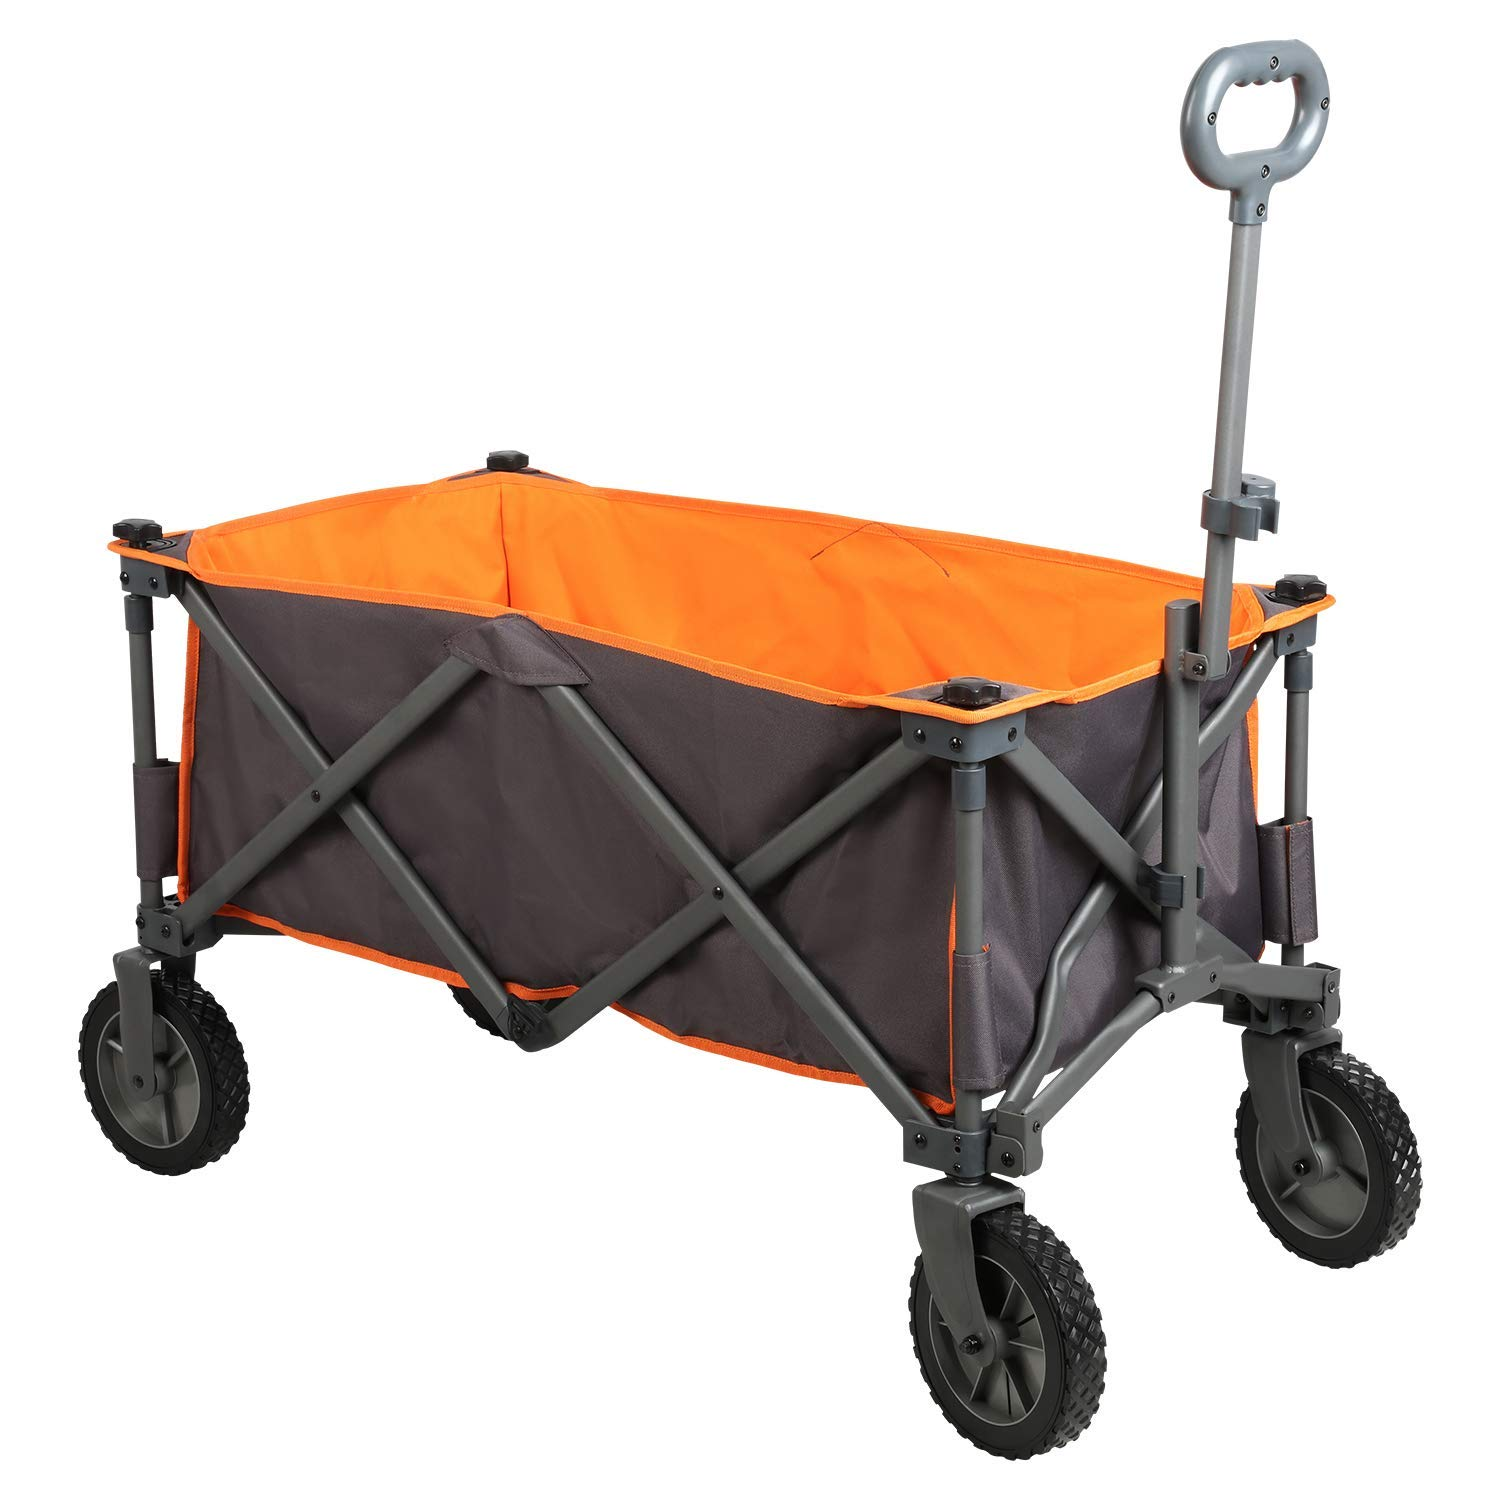 PORTAL Collapsible Folding Utility Wagon Quad Compact Outdoor Garden Camping Cart Removable Fabric, Grey by PORTAL